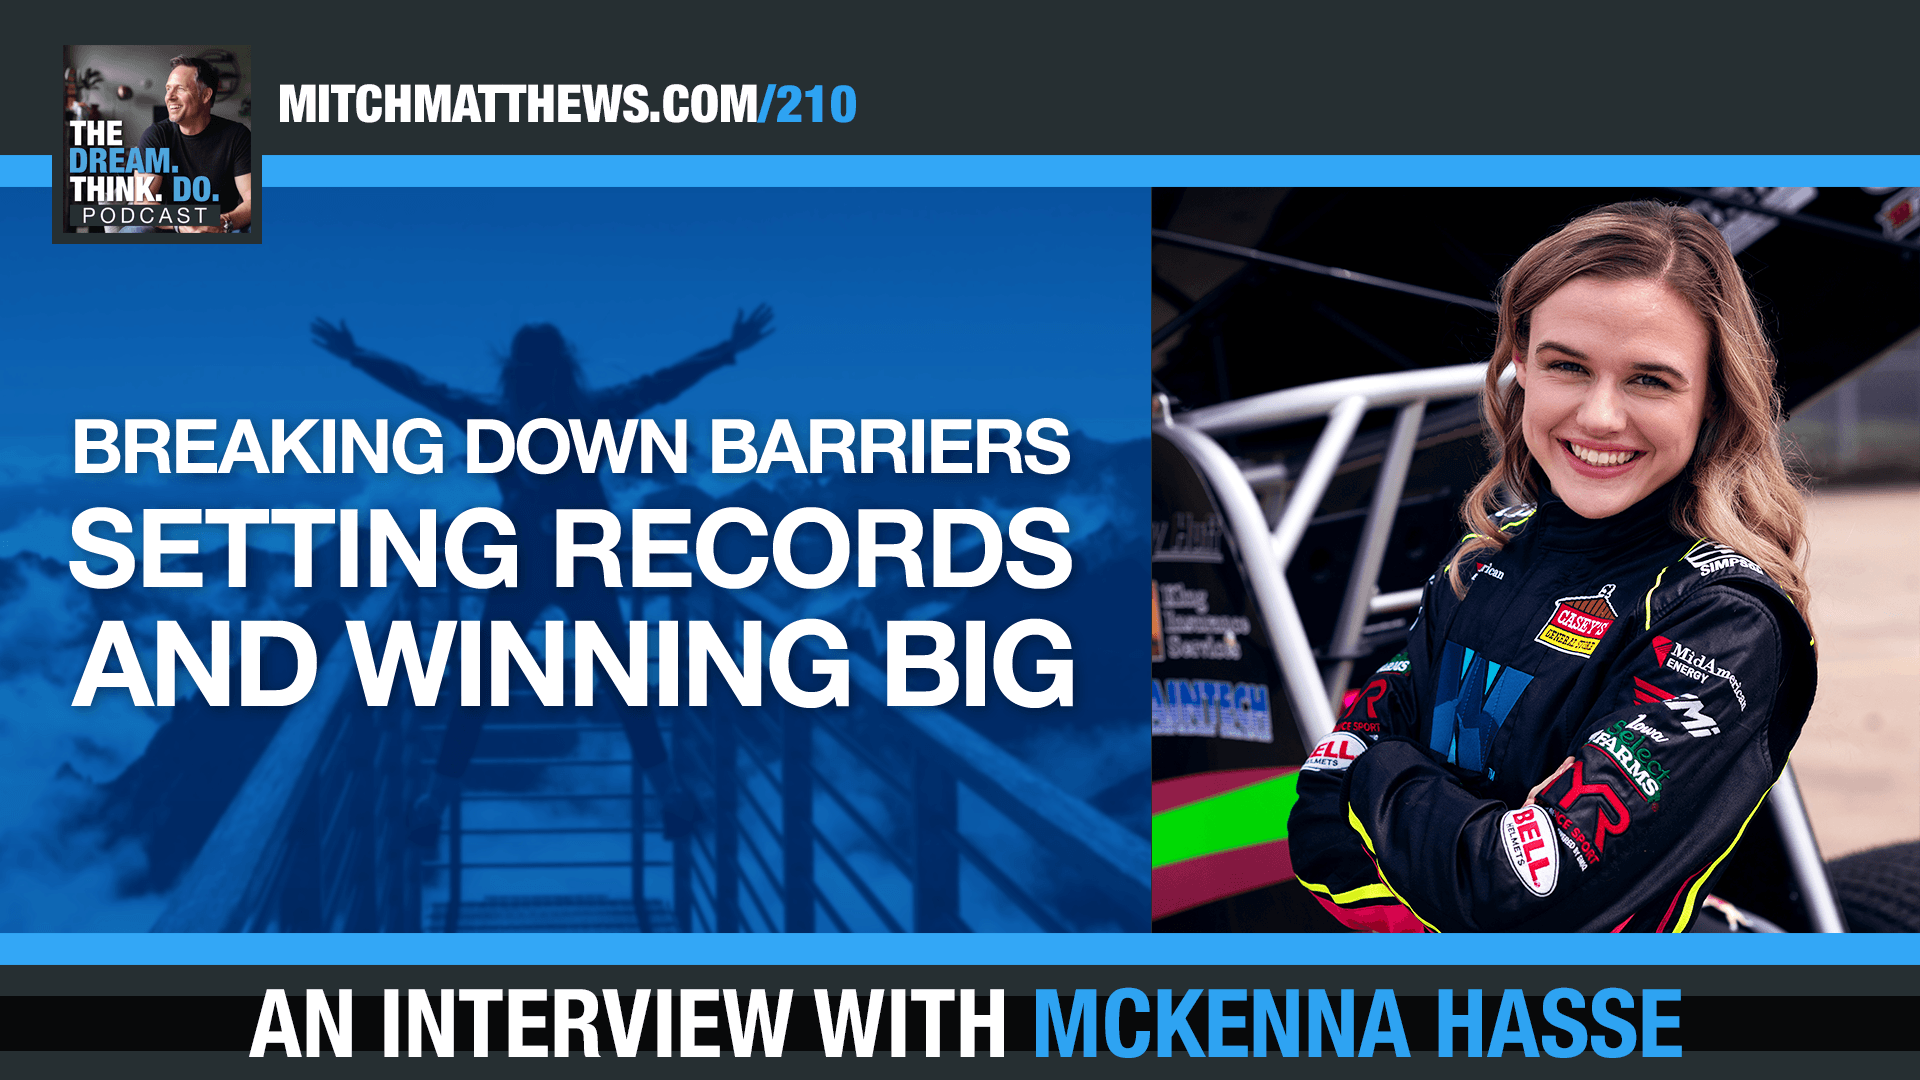 Breaking Down Barriers, Setting Records, and Winning Big!, with McKenna Haase